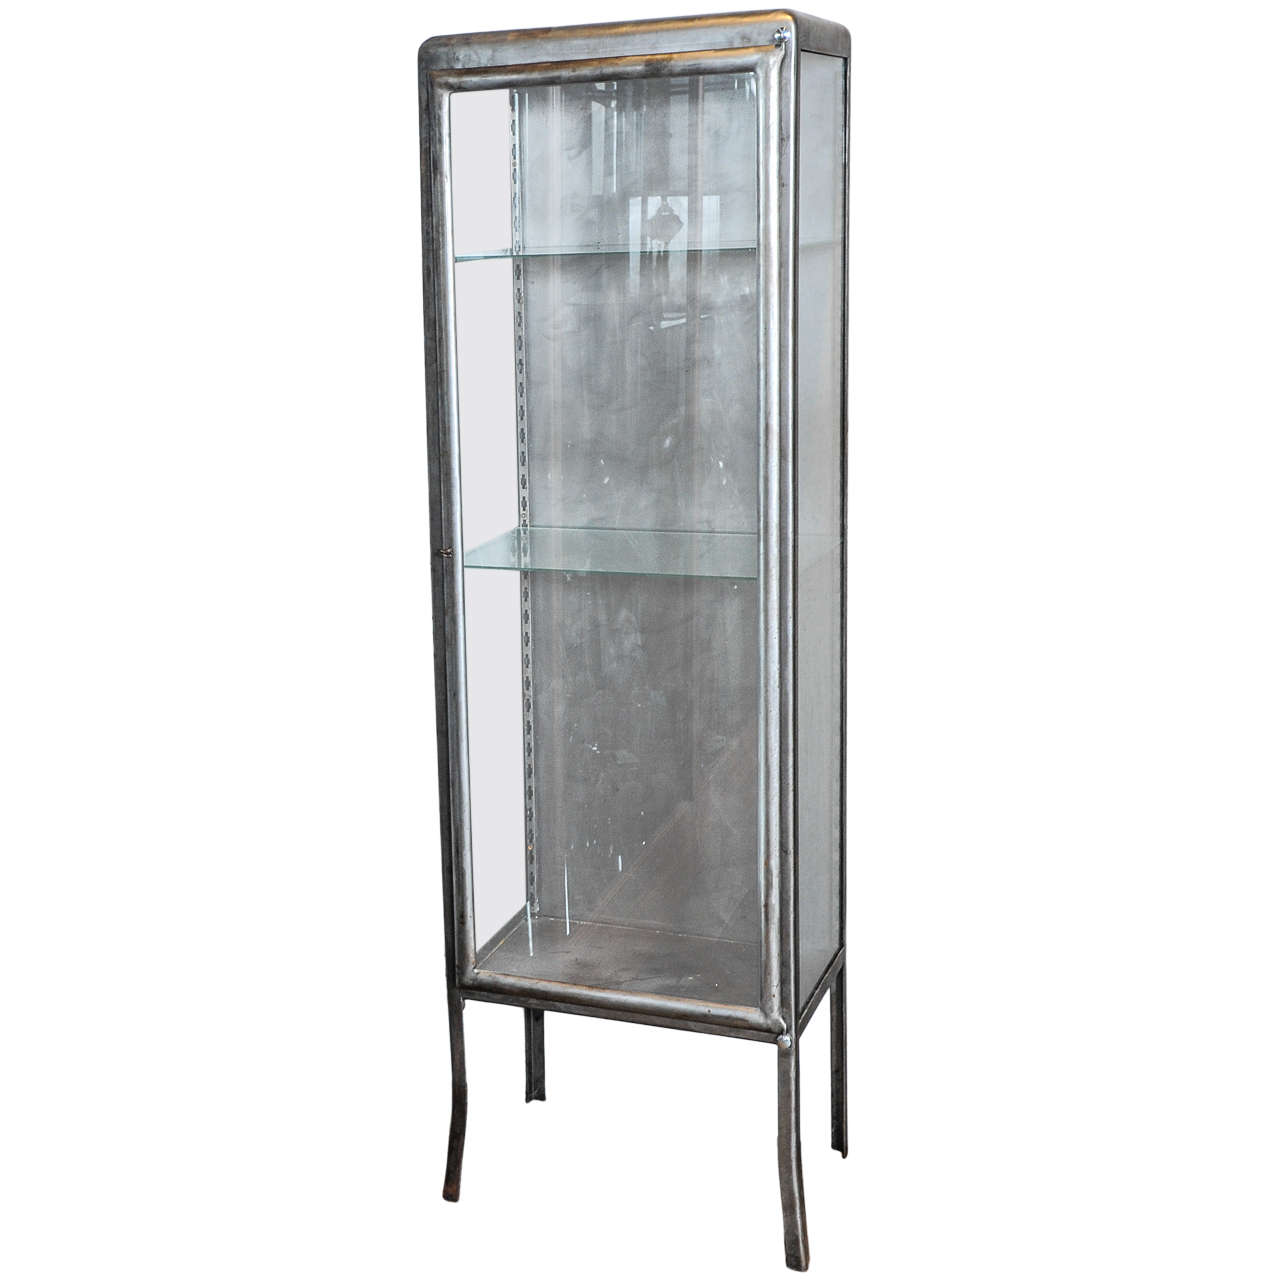 Beau A 1930s French Wrought Iron And Glass Display Cabinet / Vitrine